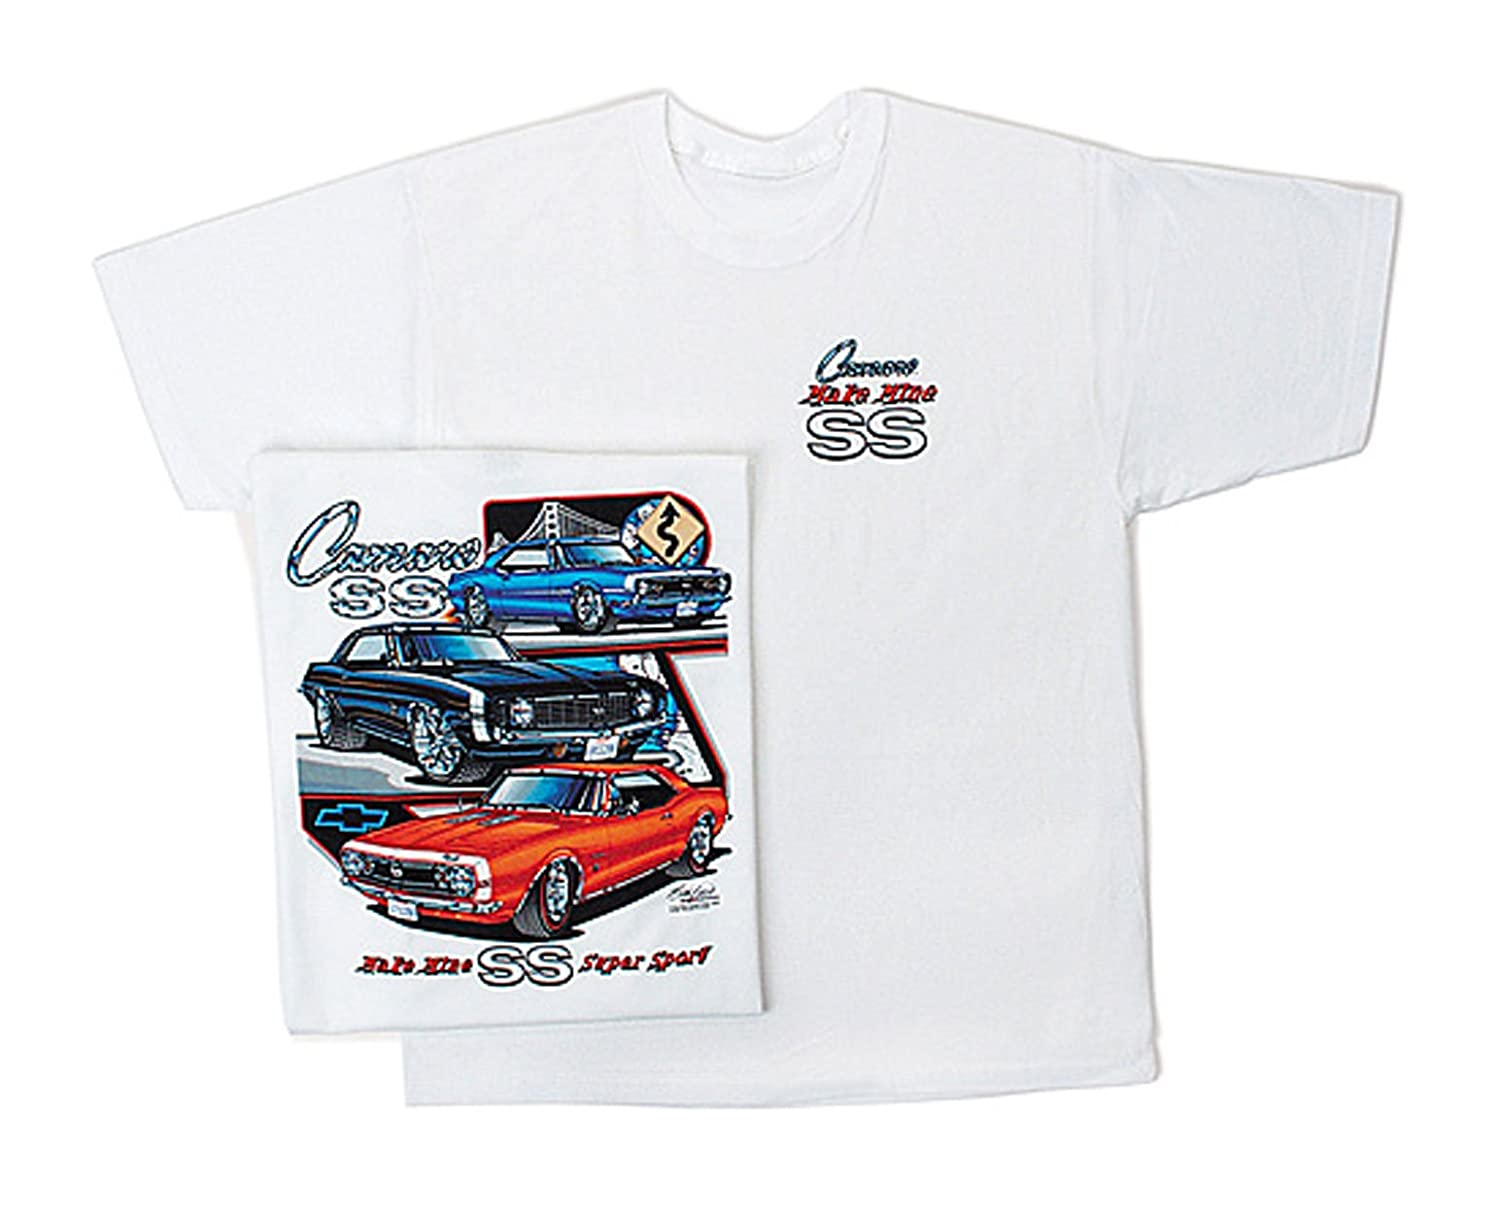 Bundle of 2 Items One T-Shirt and One Racing Decal Gregs Automotive Camaro SS Chevrolet Chevy T Shirt